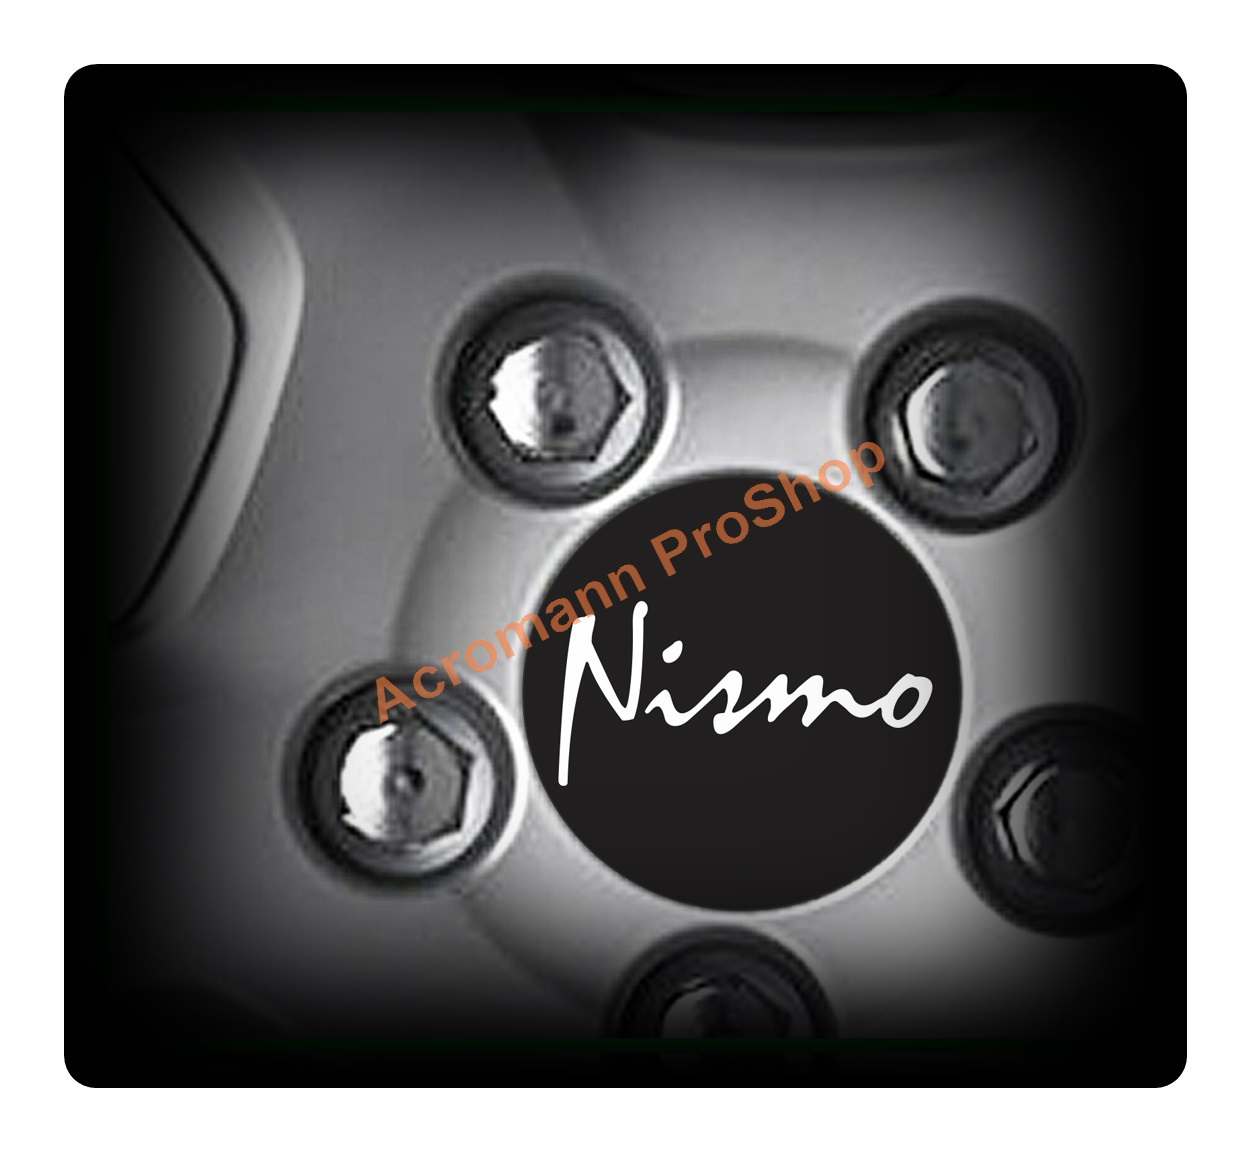 NISMO Printed 2.2inch Wheel Cap Decal (Style B) x 4 pcs